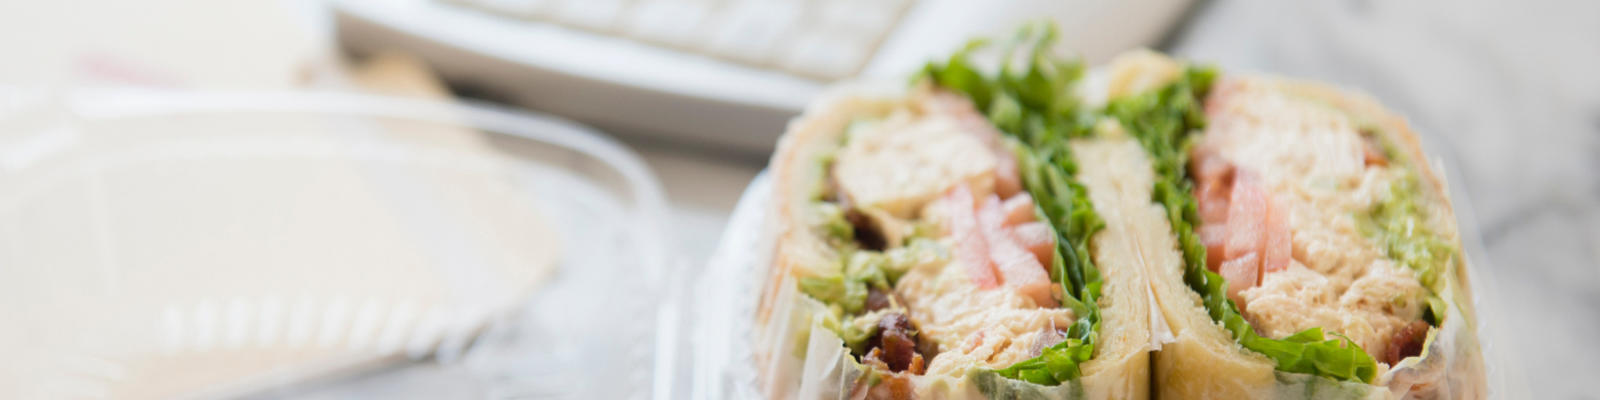 A sandwich wrap sitting on an office desk with a keyboard in the background